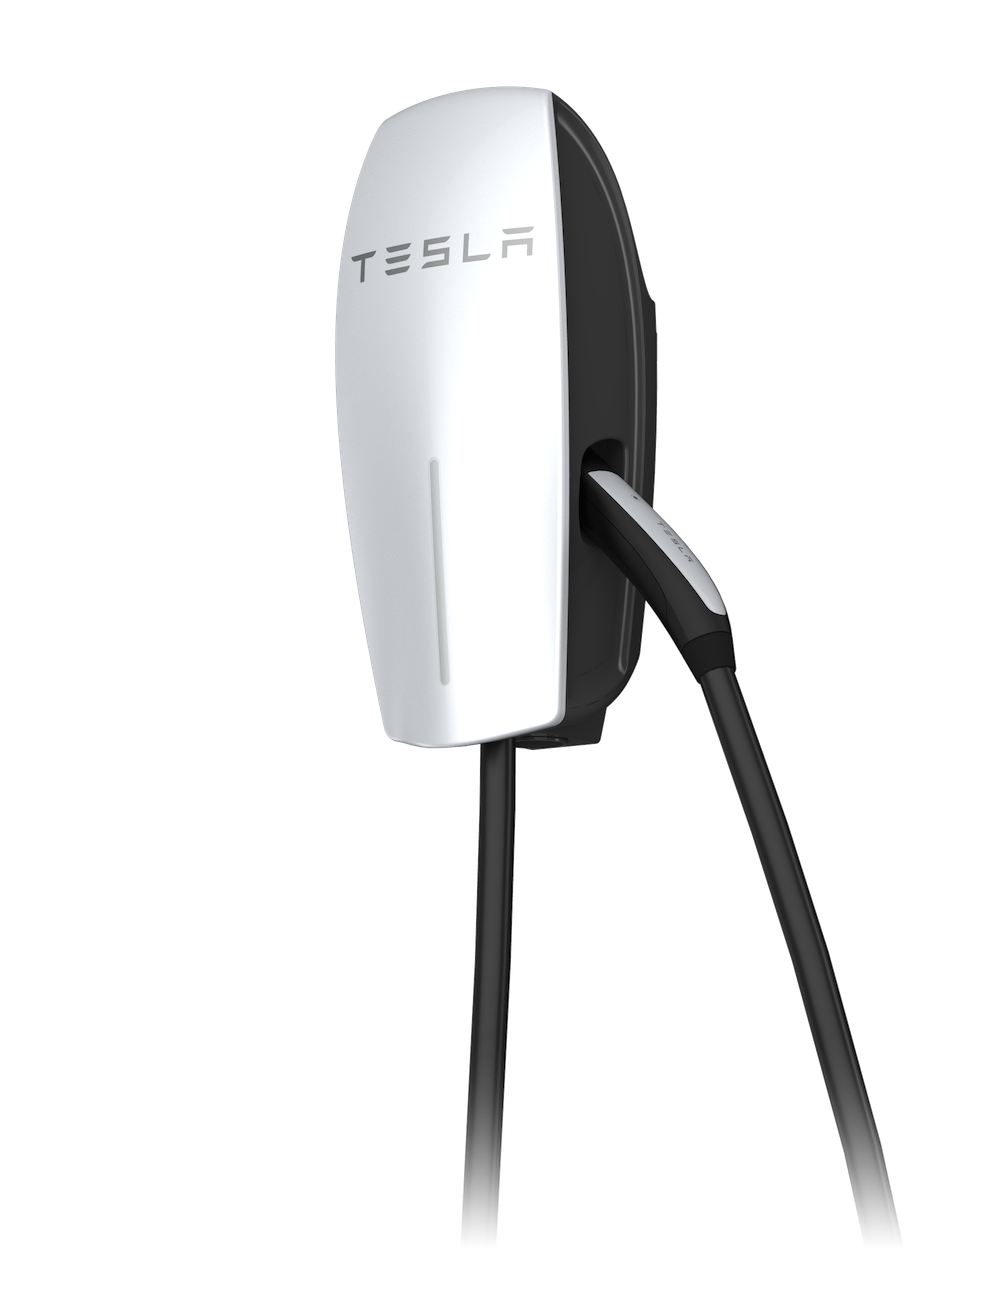 Home Charging Installation Tesla Electric Car Charger Tesla Car Charger Car